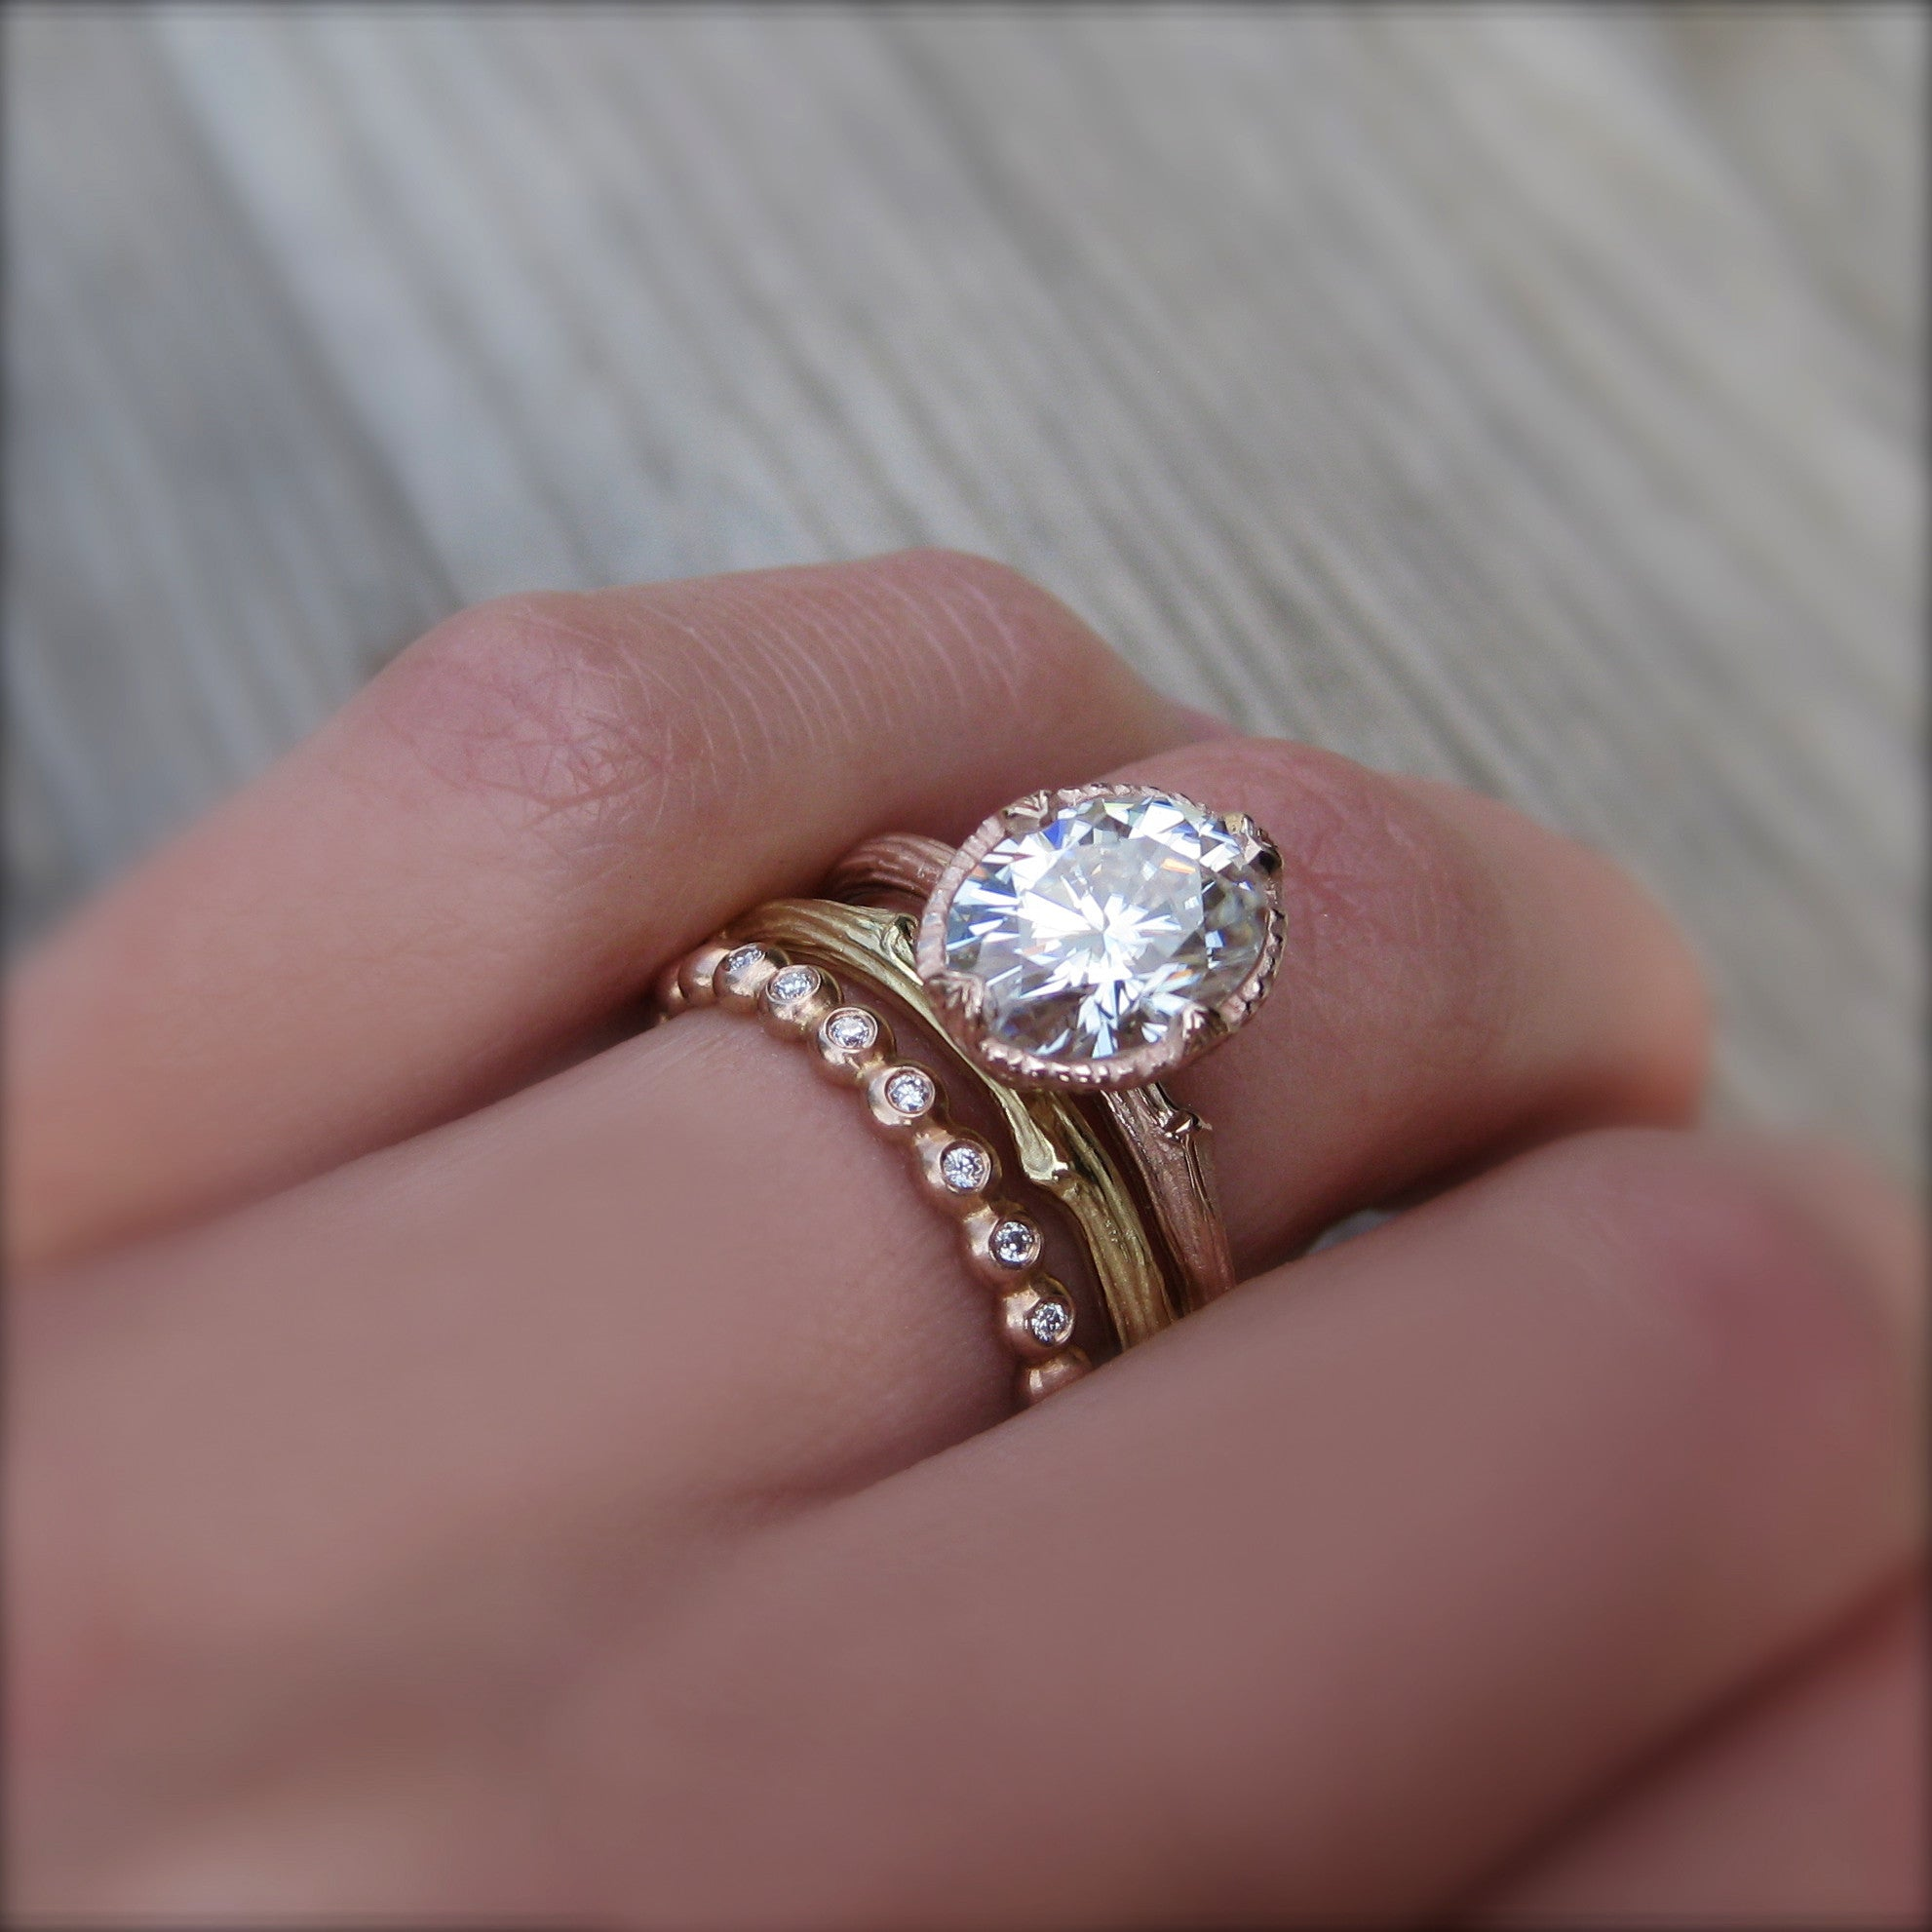 mm or band ct oval ring is crushed yellow gem with pin moissanite gold engagement rings harro all round ice a this of